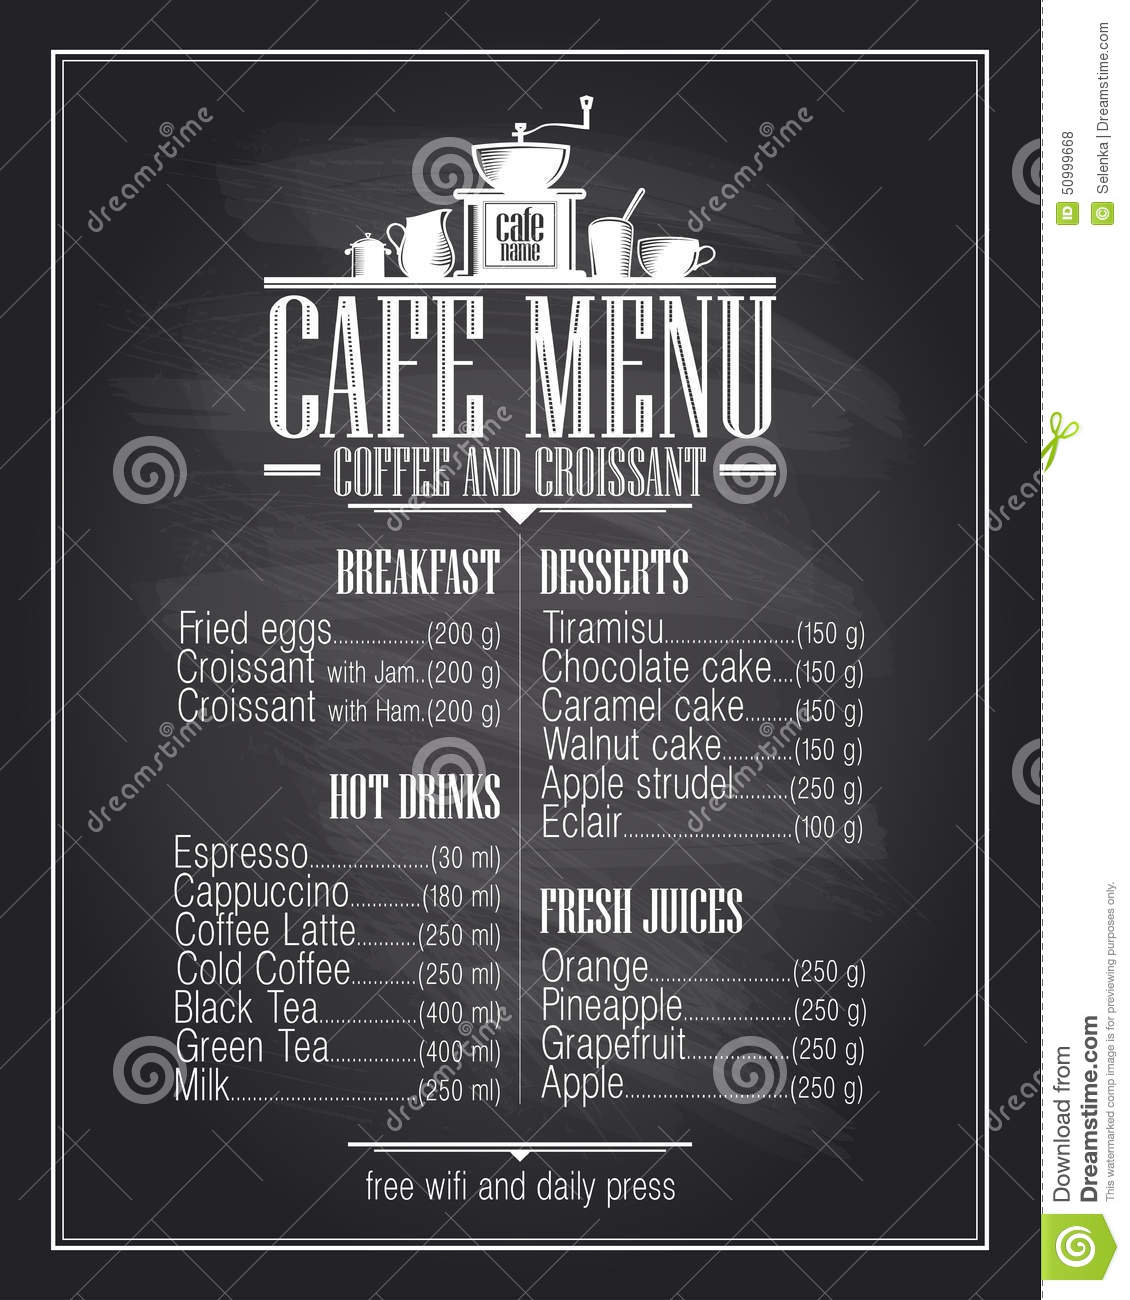 coffee price list template - chalkboard cafe menu list design with dishes name stock